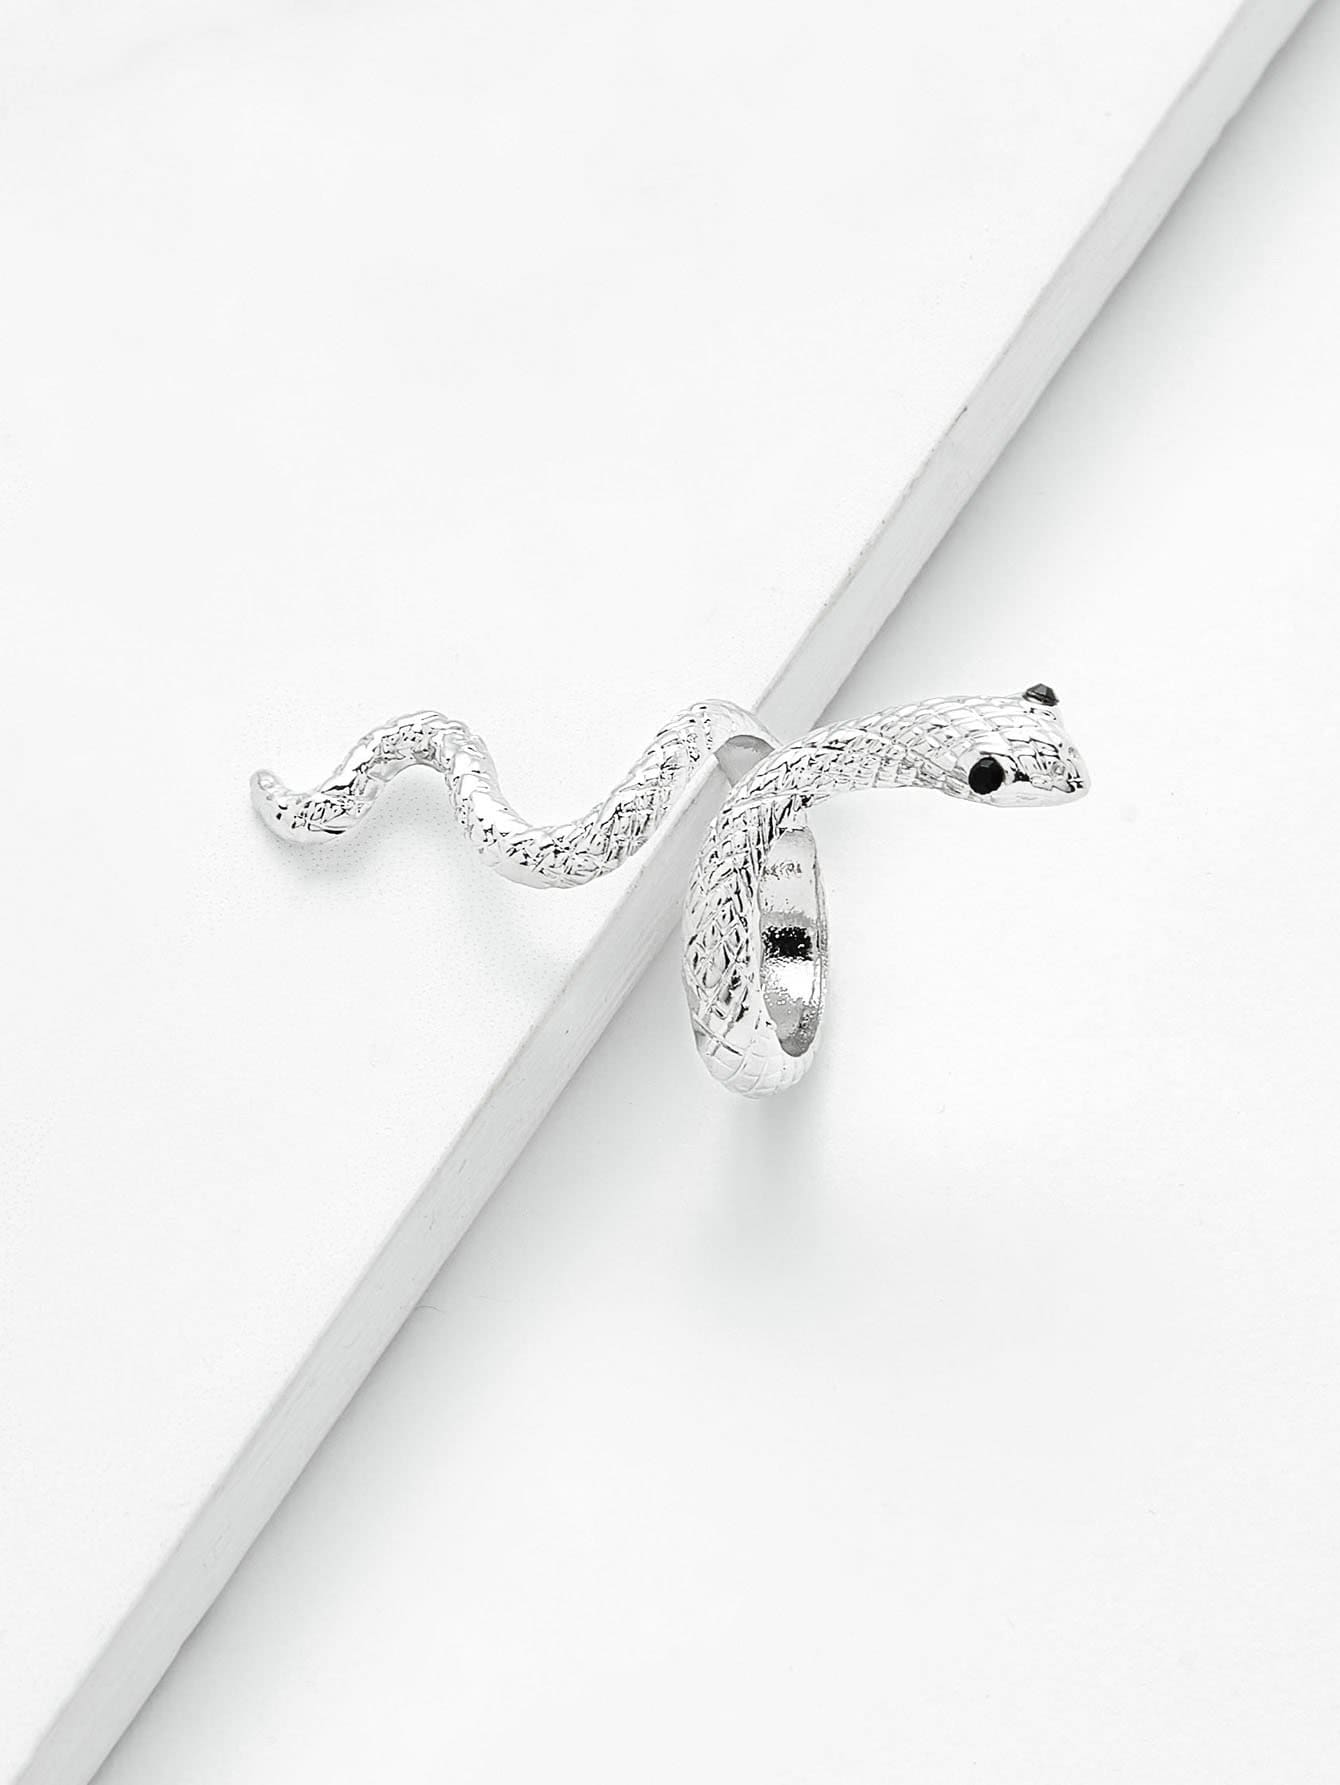 Cute Snake Design Ring - Rings